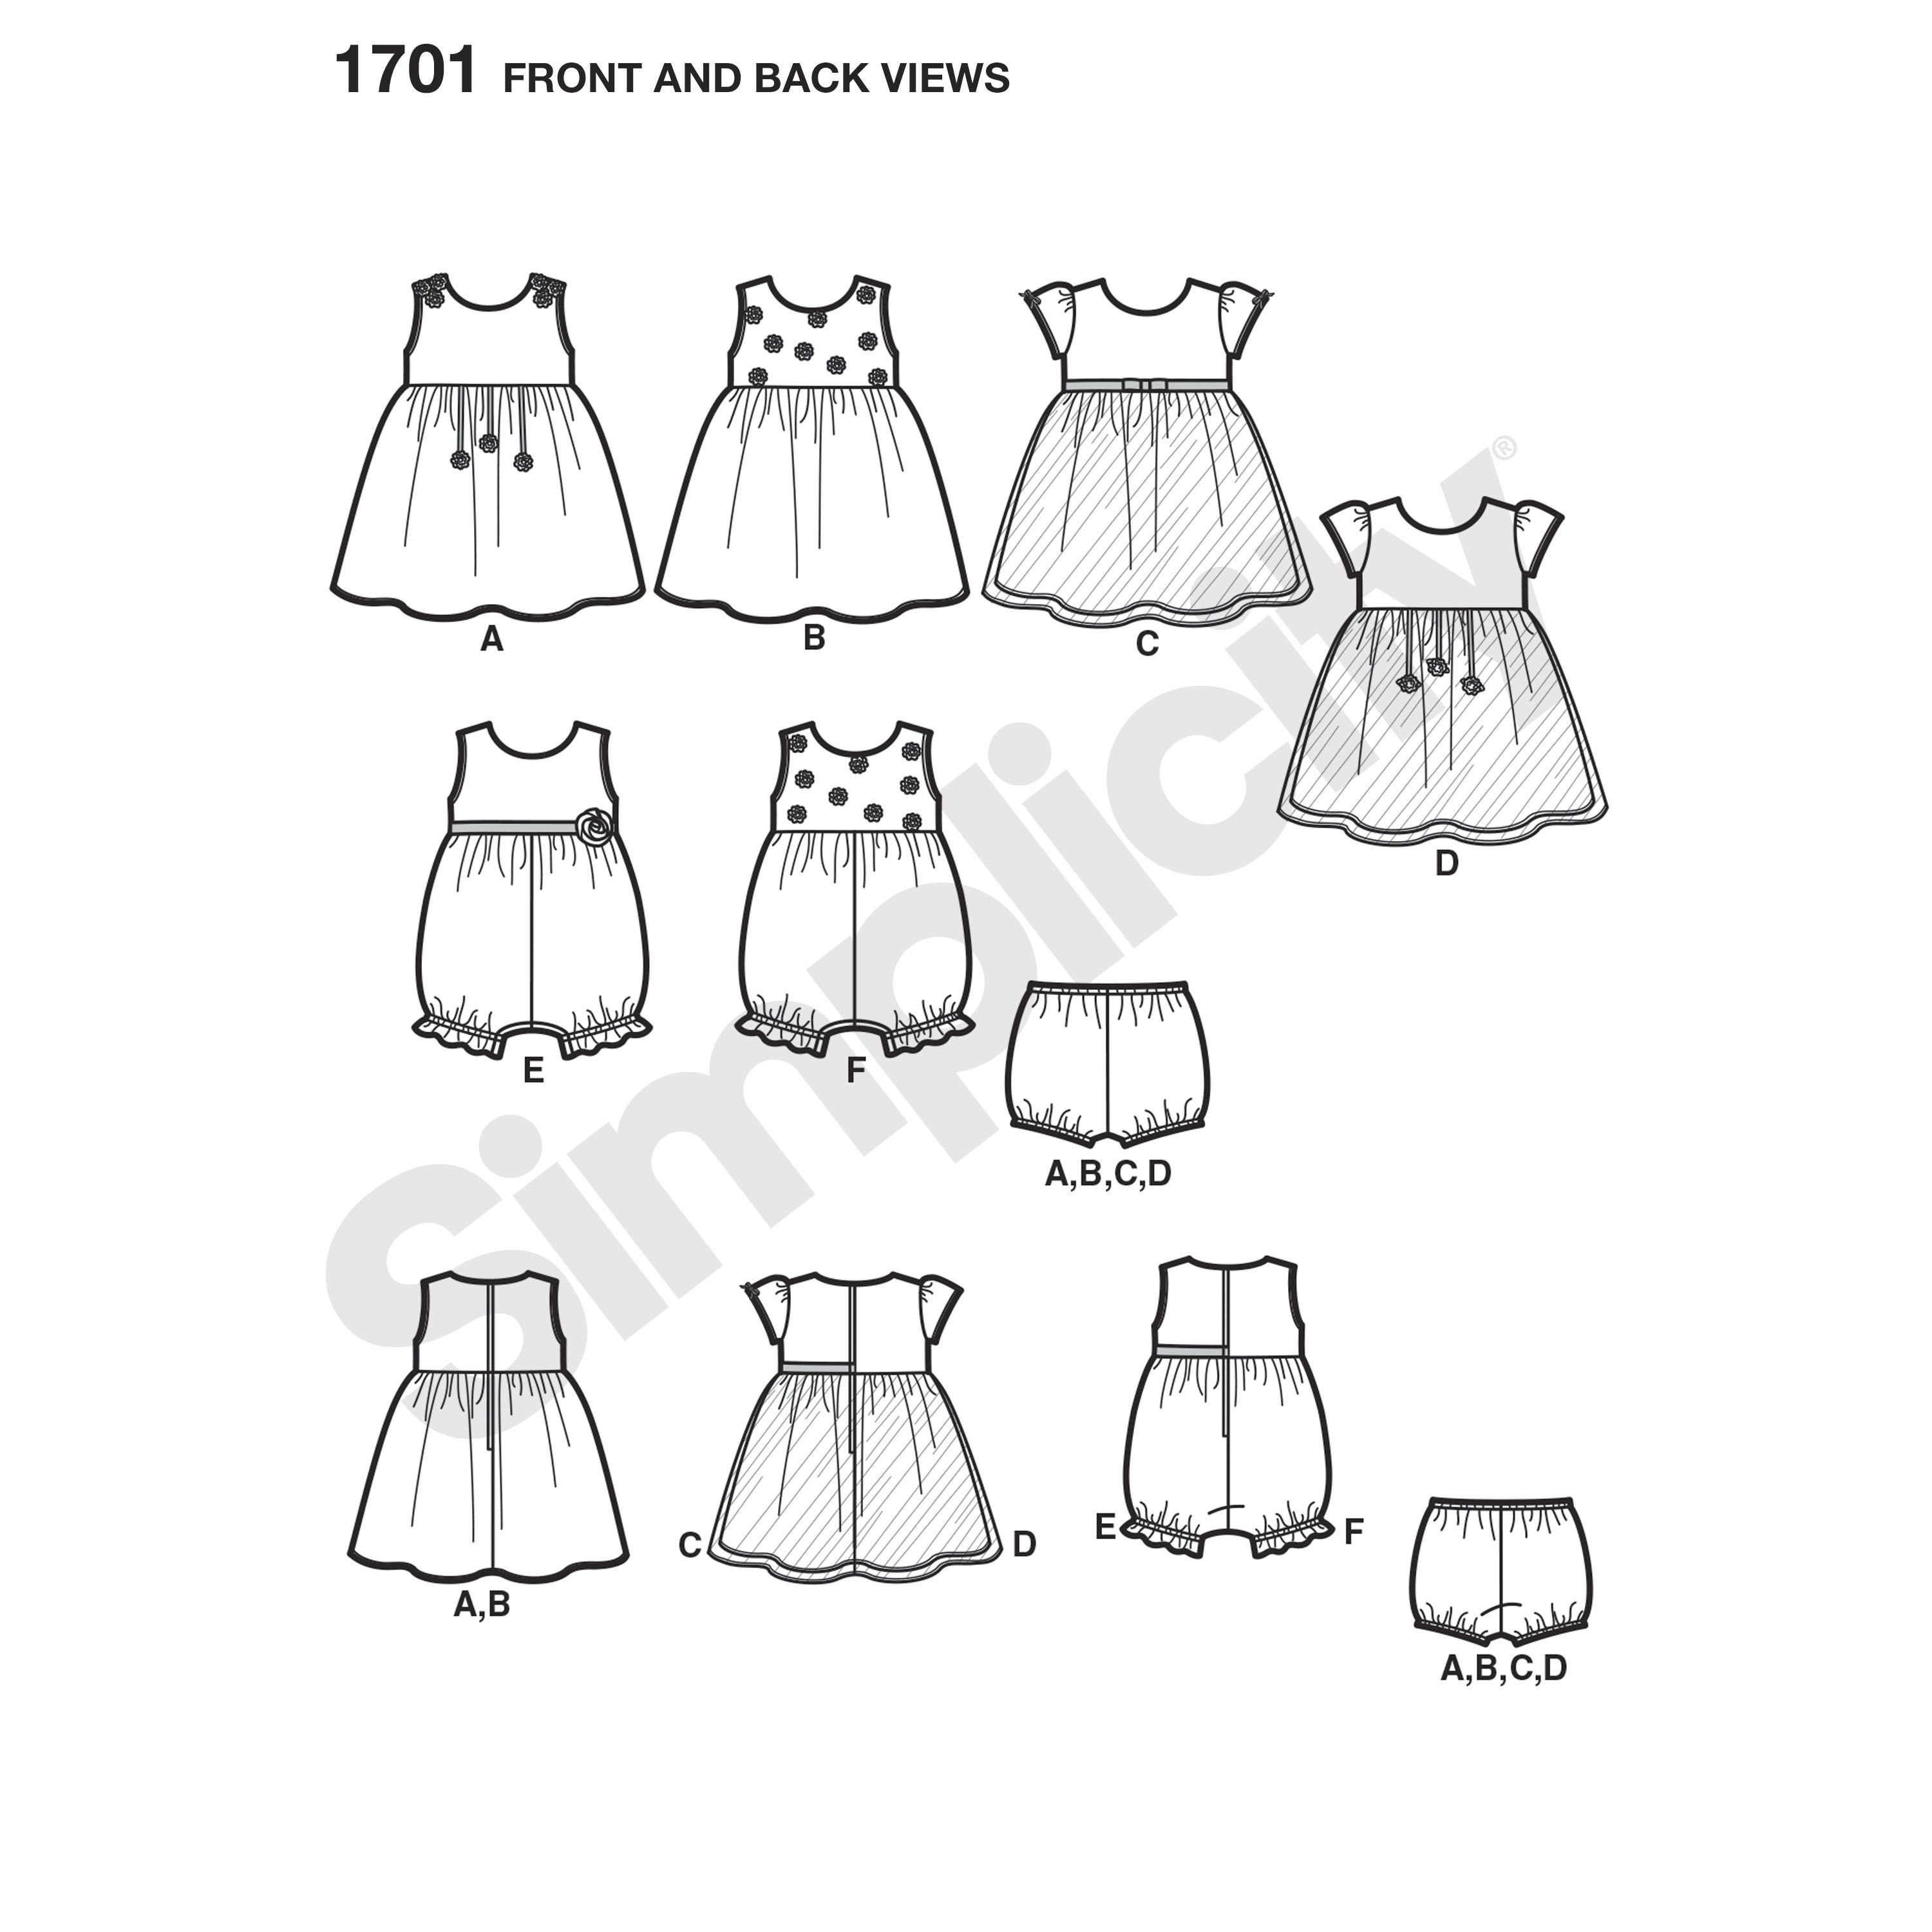 Babies' dress with or without sleeves and sleeveless